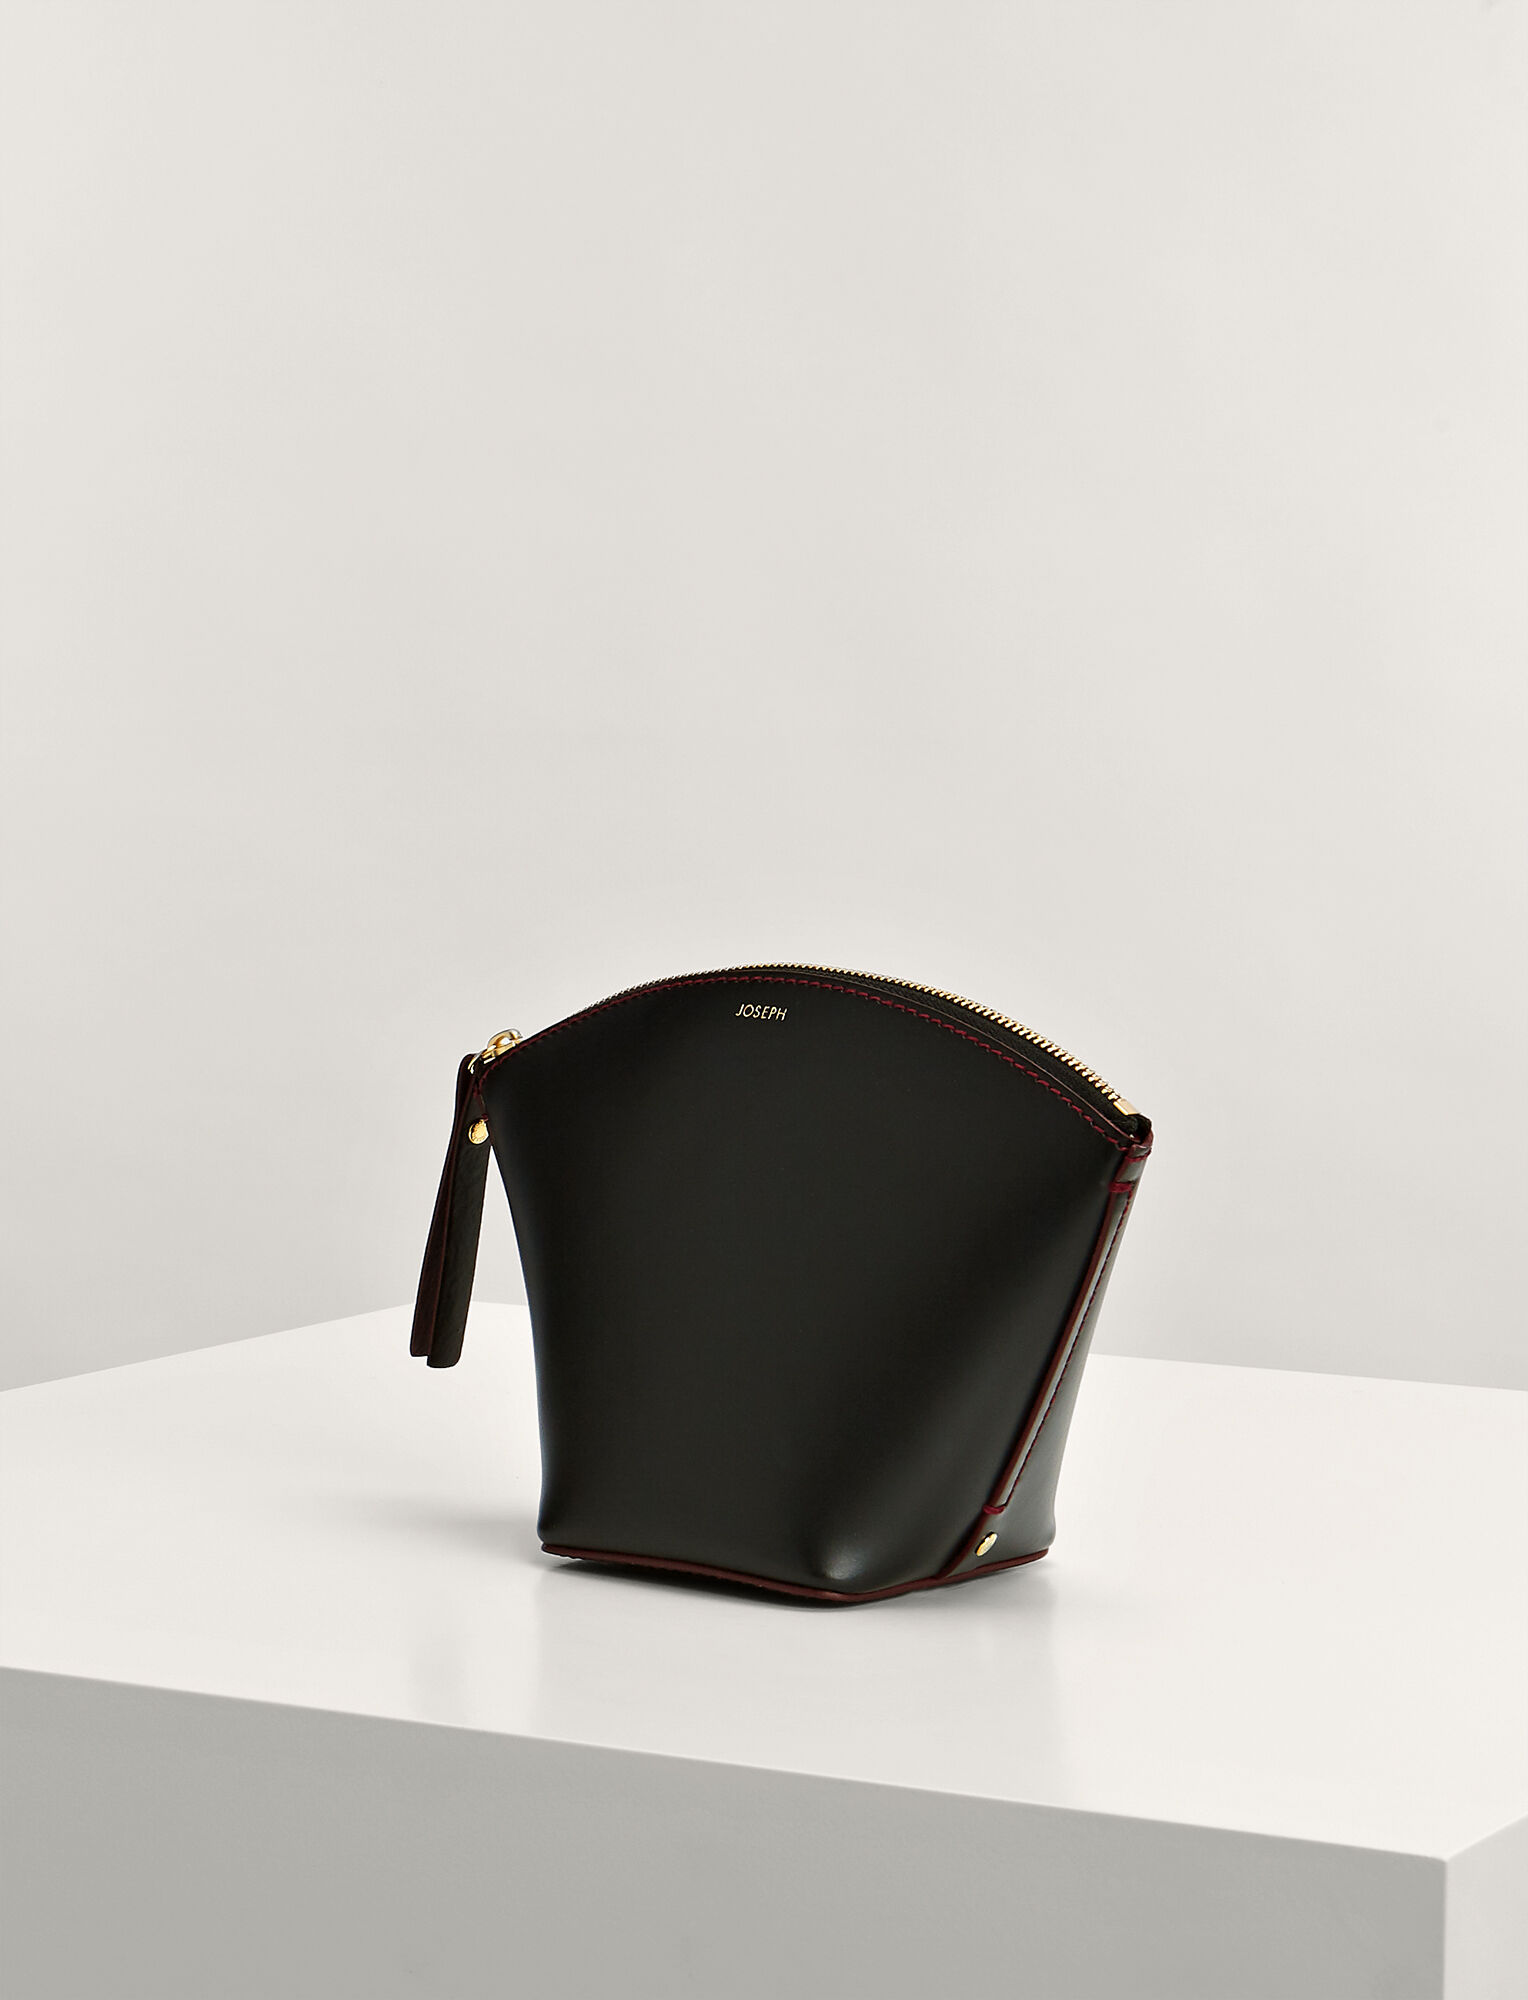 Joseph, Calf Leather Cosmetic Pouch, in BLACK